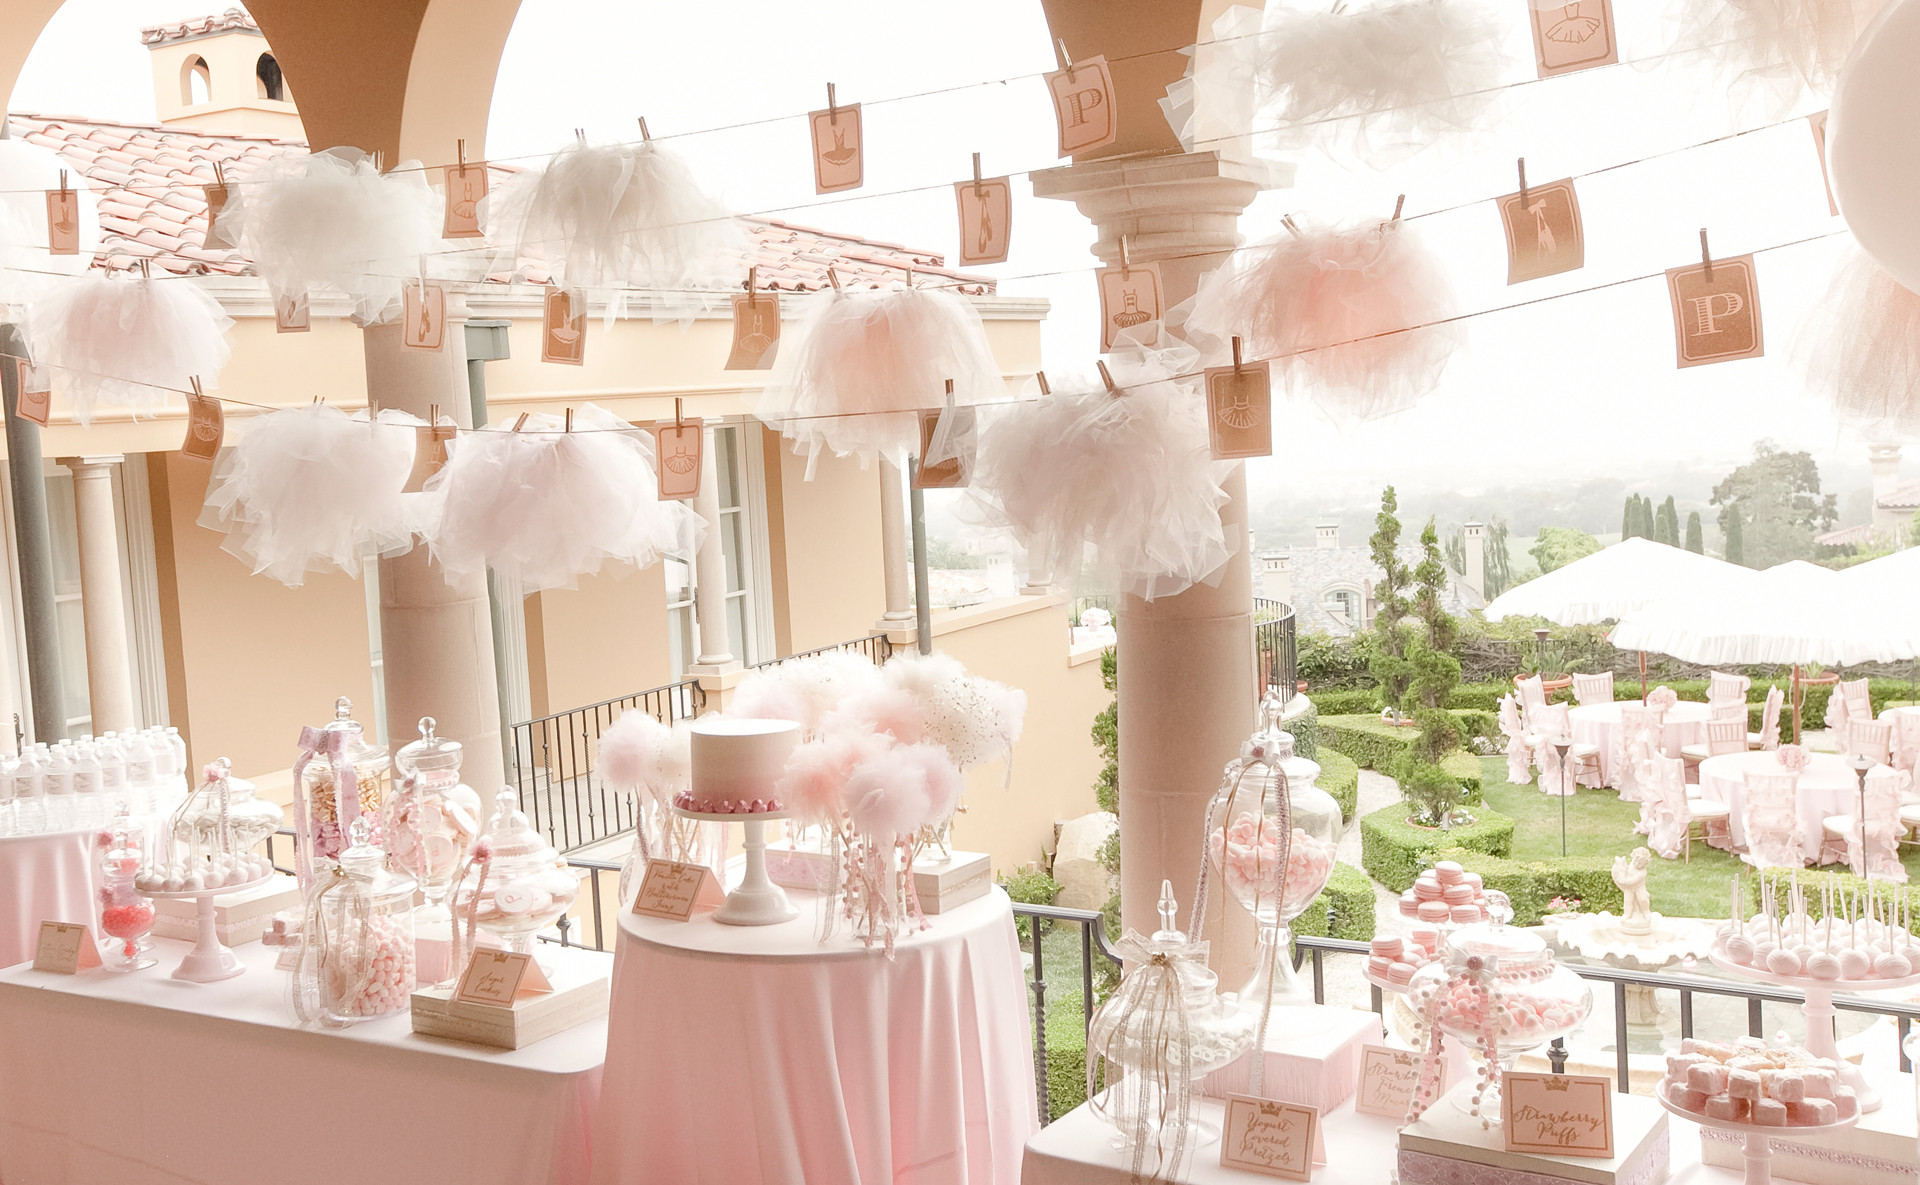 Best ideas about Baby First Birthday Decorations . Save or Pin Baby s first birthday Party planning tips for the Now.